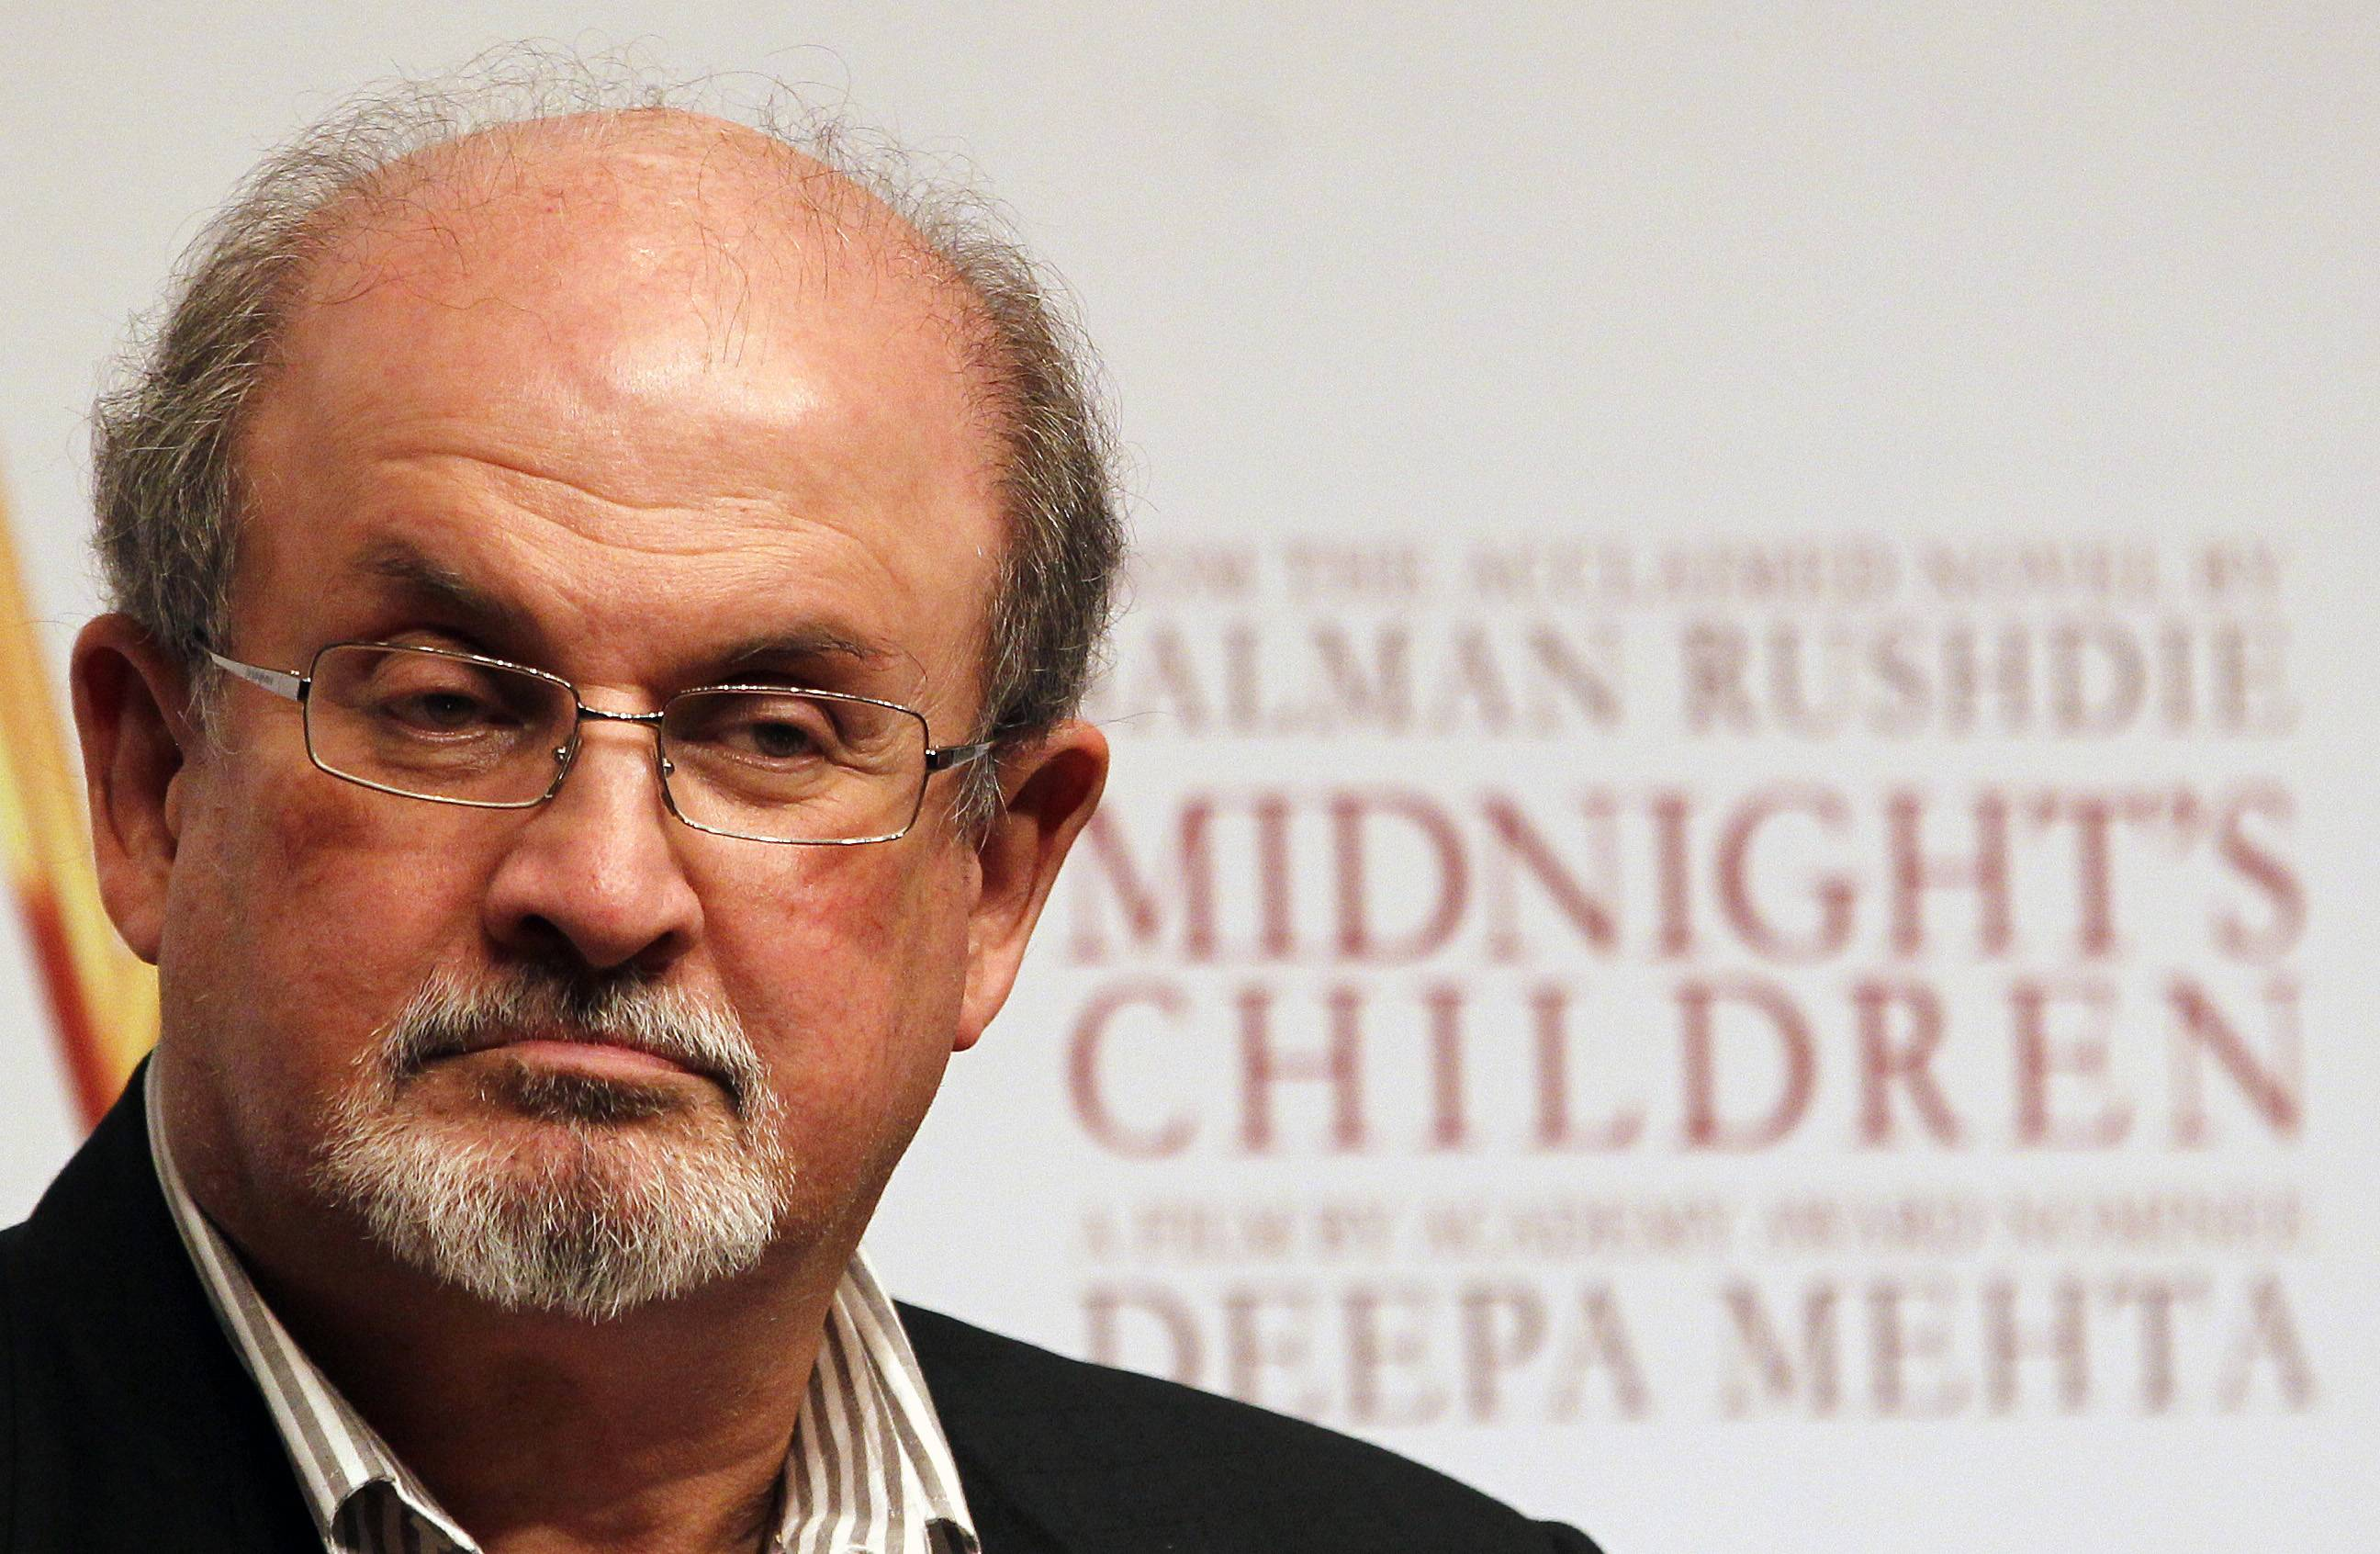 Author Salman Rushdie, Toni Morrison and two members of the Russian protest group Pussy Riot were among the featured speakers at a black-tie event championing freedom of expression.